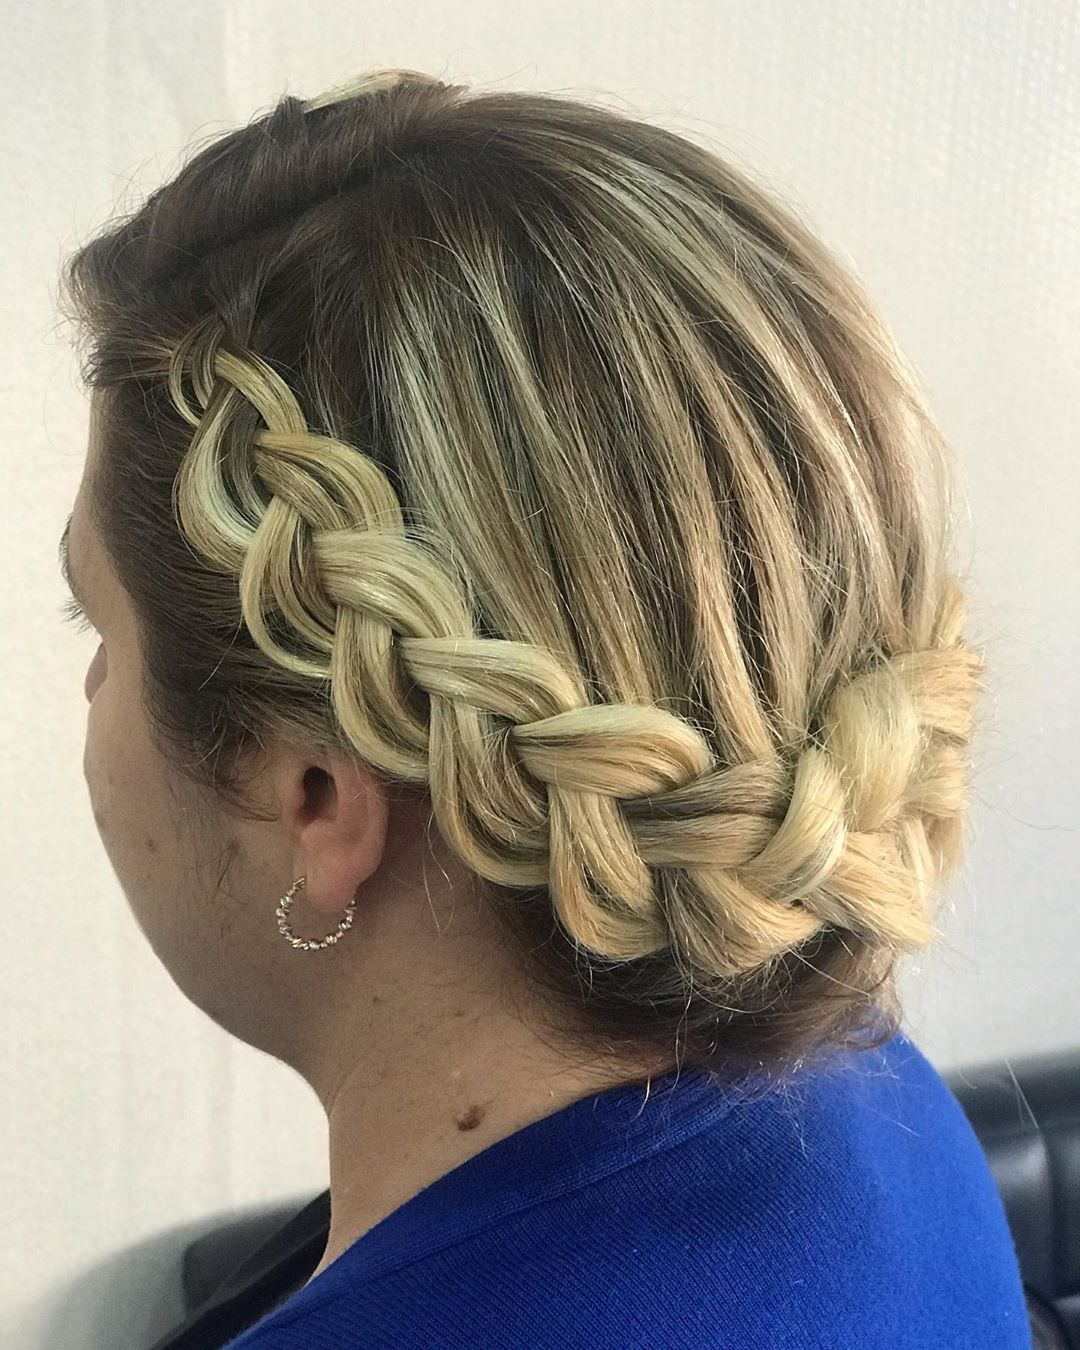 2020 Crown Braid Hairstyle (5)